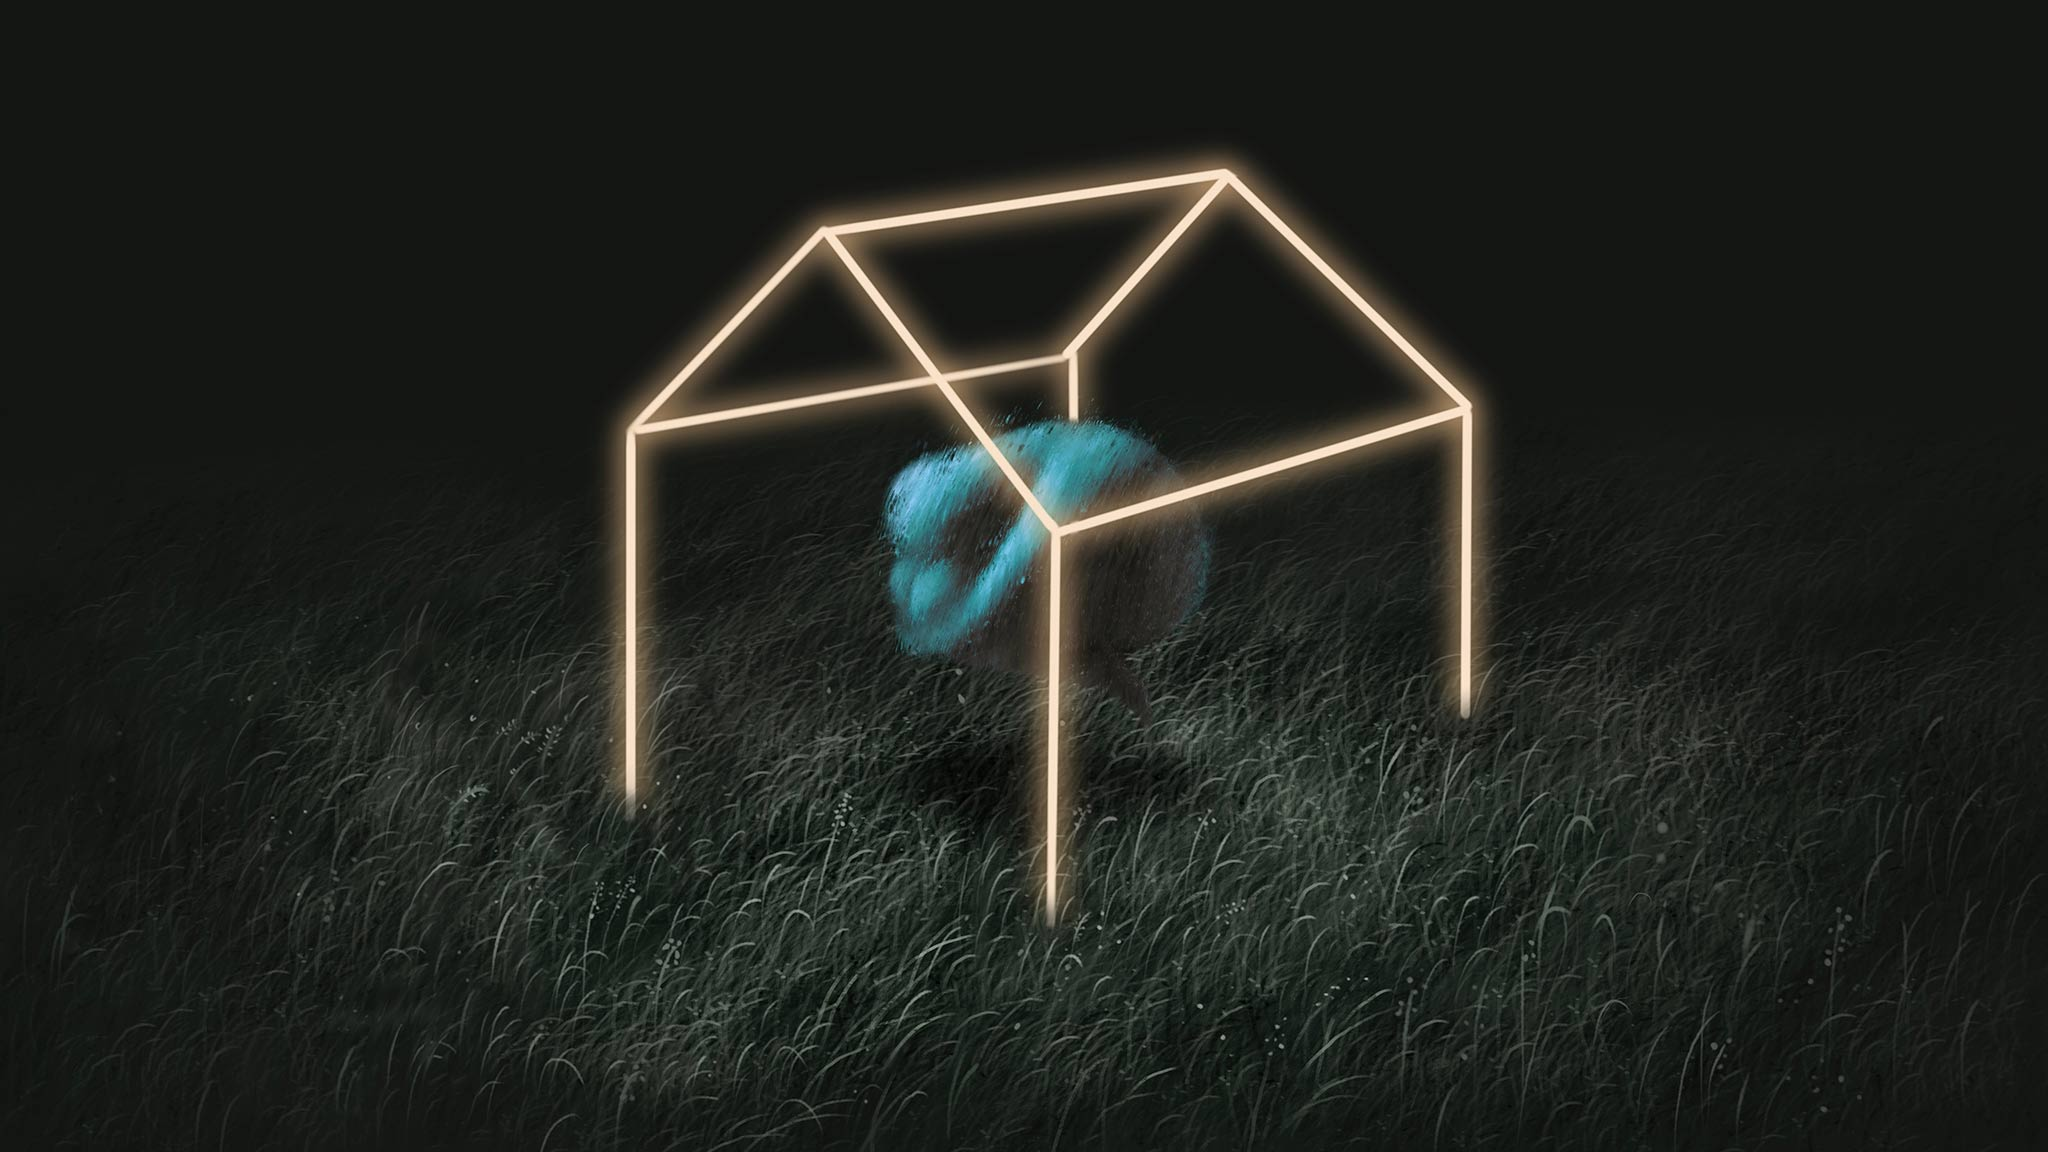 Illustration Of Human Figure In Fetal Position, Trapped Within The Glowing Outline Of A House, Loneliness Concept